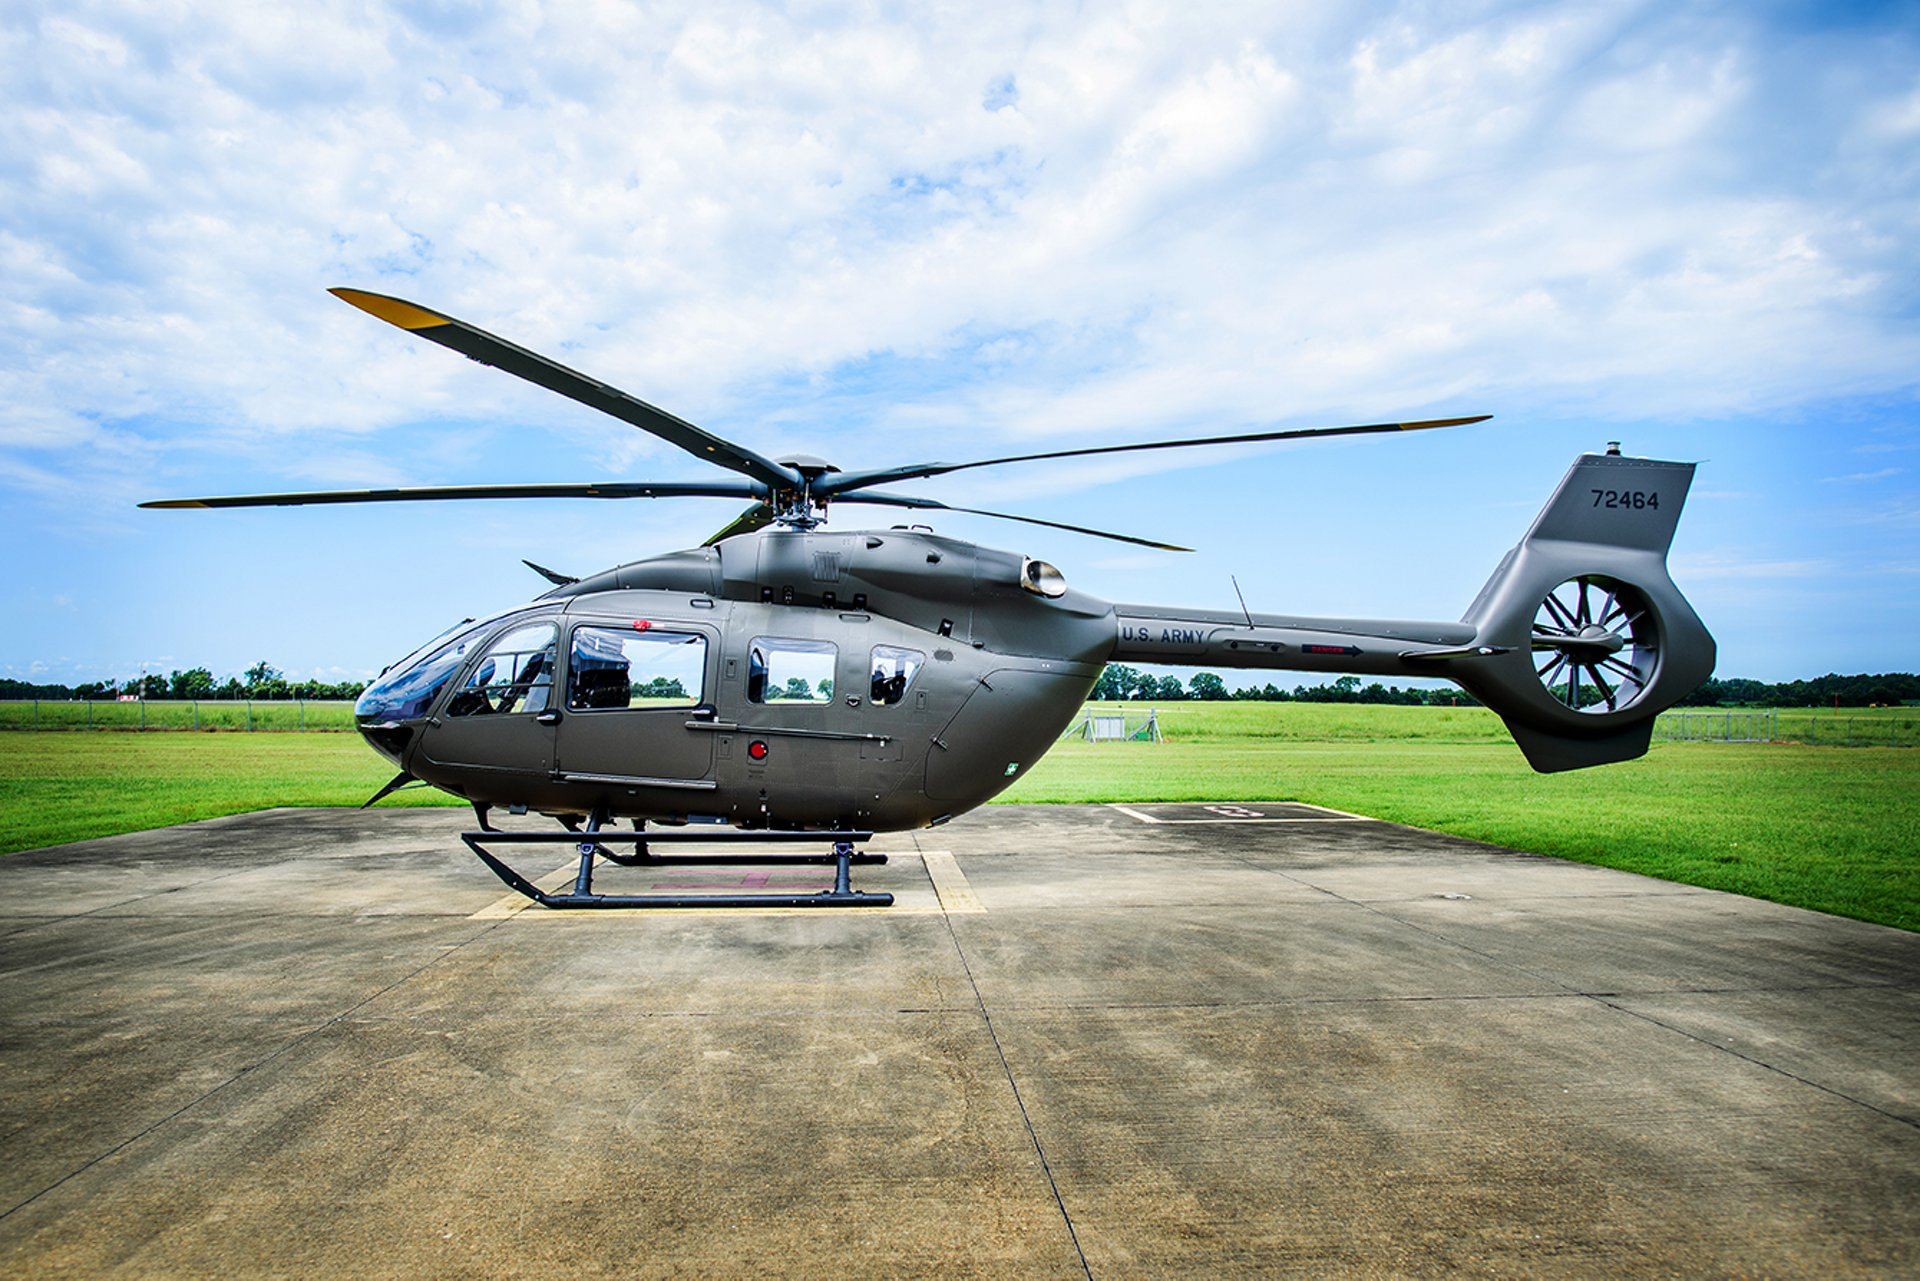 Airbus Delivers First UH-72B Lakota Military Helicopter to US Army National Guard